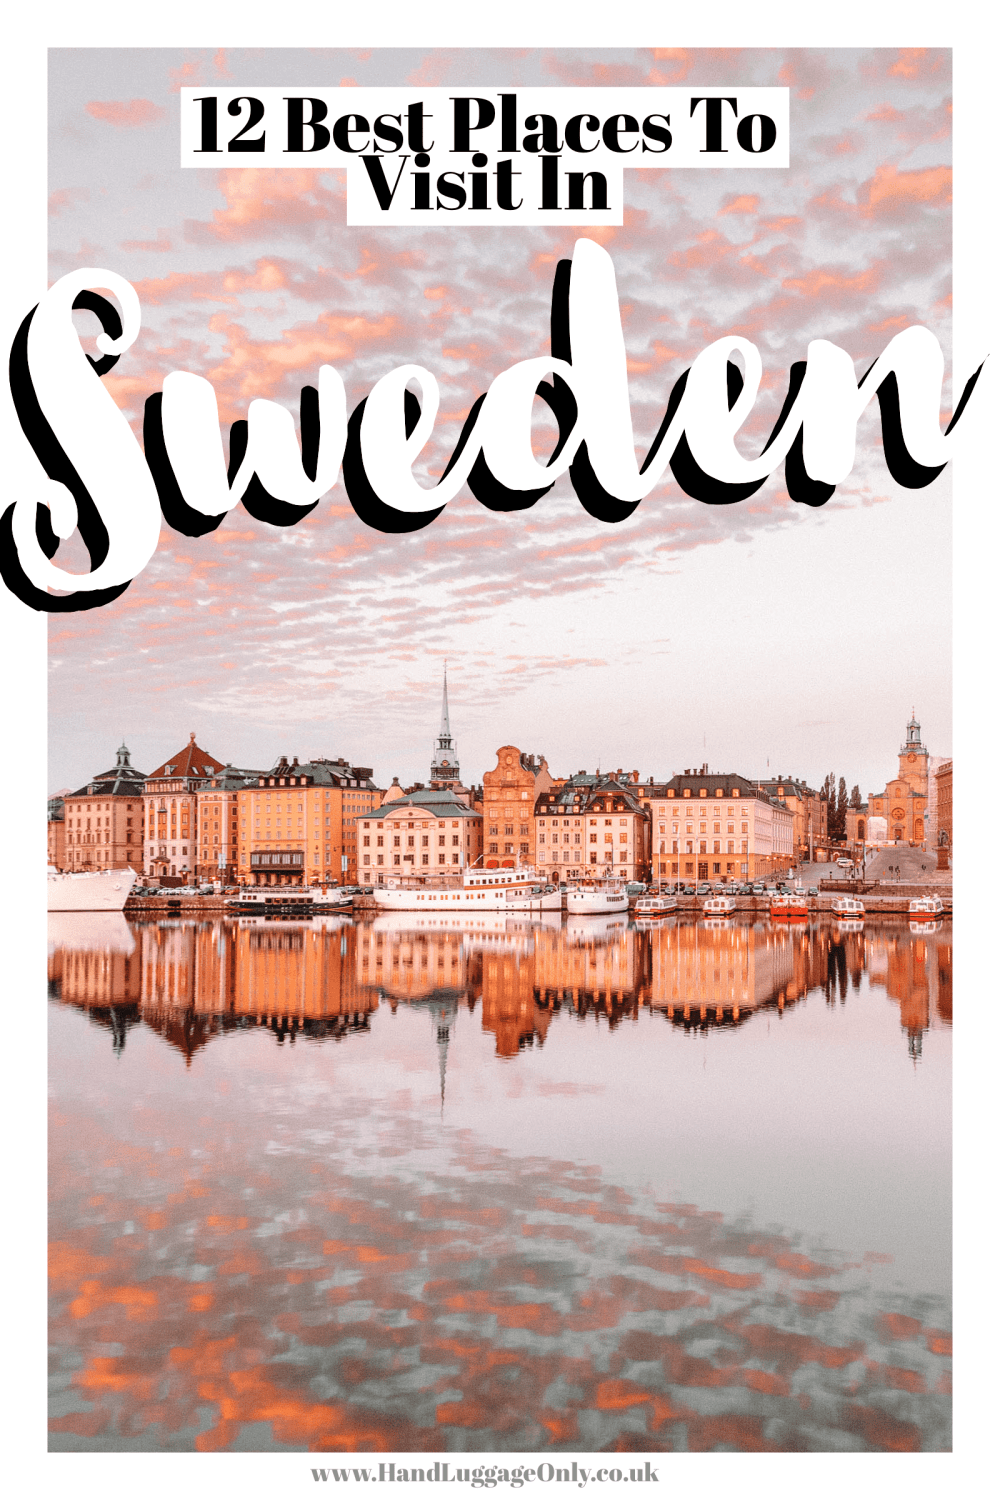 12 Best Places In Sweden To Visit In 2020 Cool Places To Visit Sweden Travel Stockholm Travel